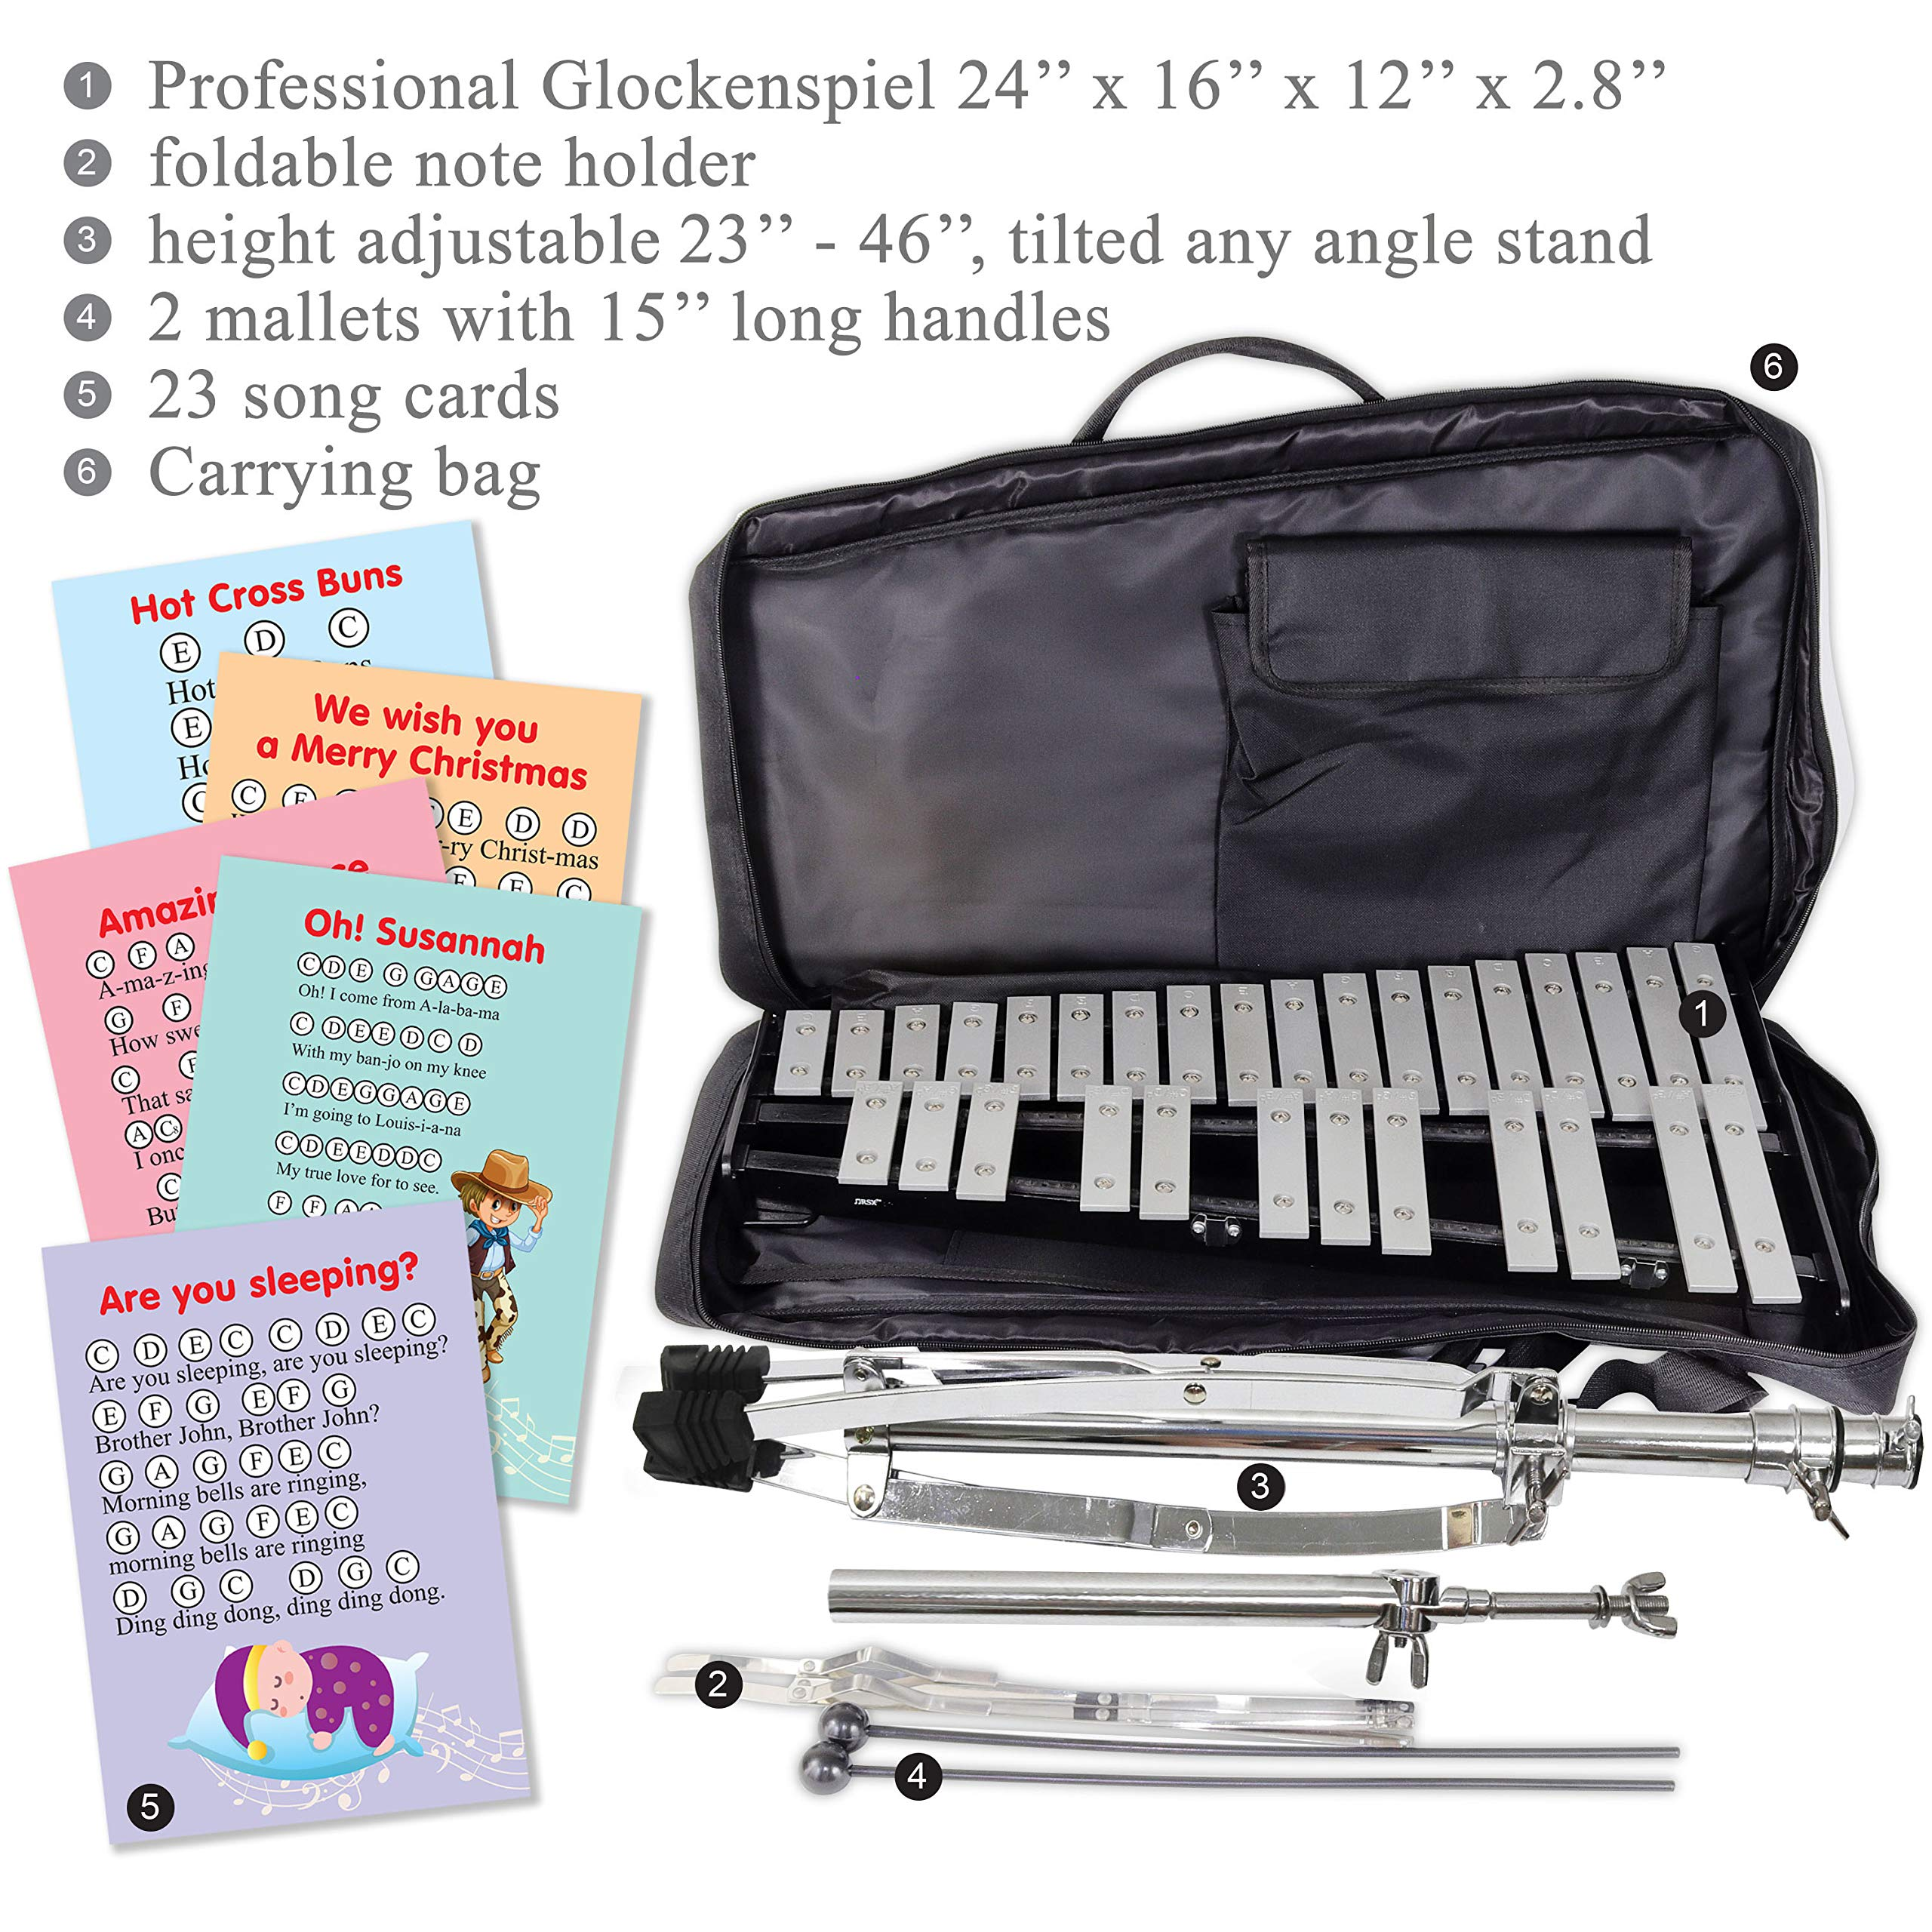 30 note Professional Glockenspiel - Metal Bell Kit Xylophone with Stand, Note Holder and Carrying Bag by inTemenos (Image #9)